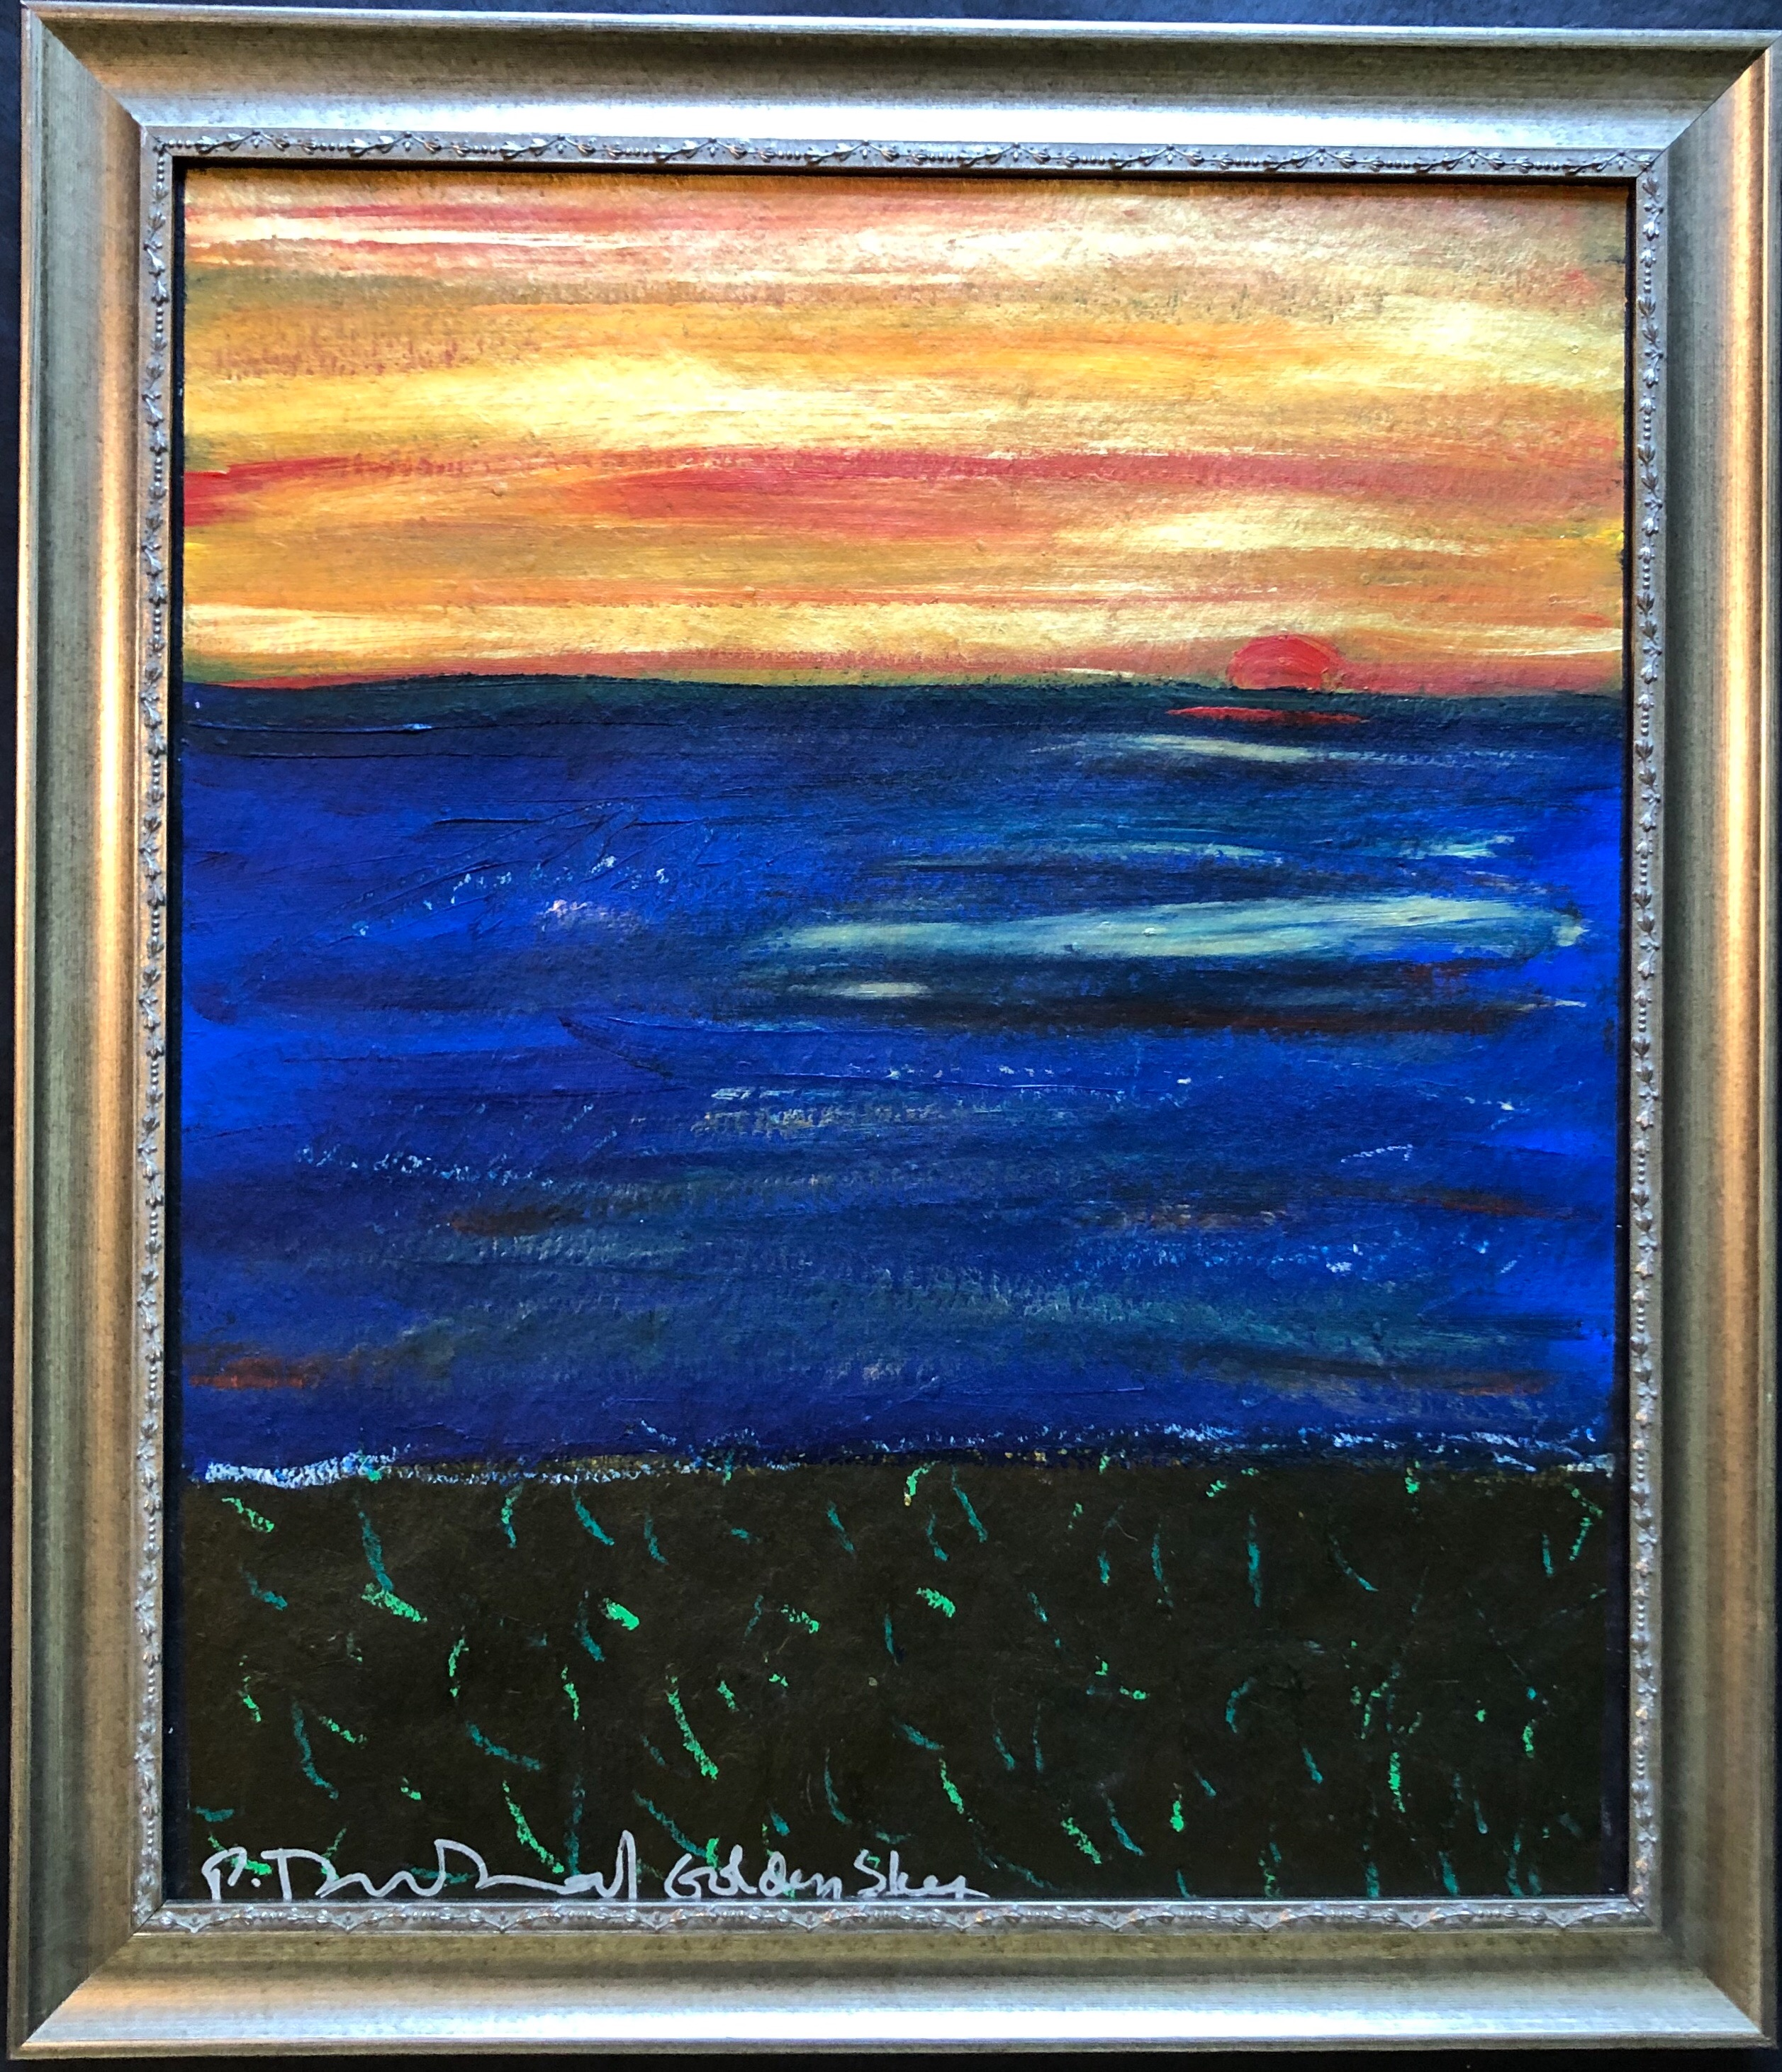 Original painting done while witnessing a beautiful golden sunset at Ocean City